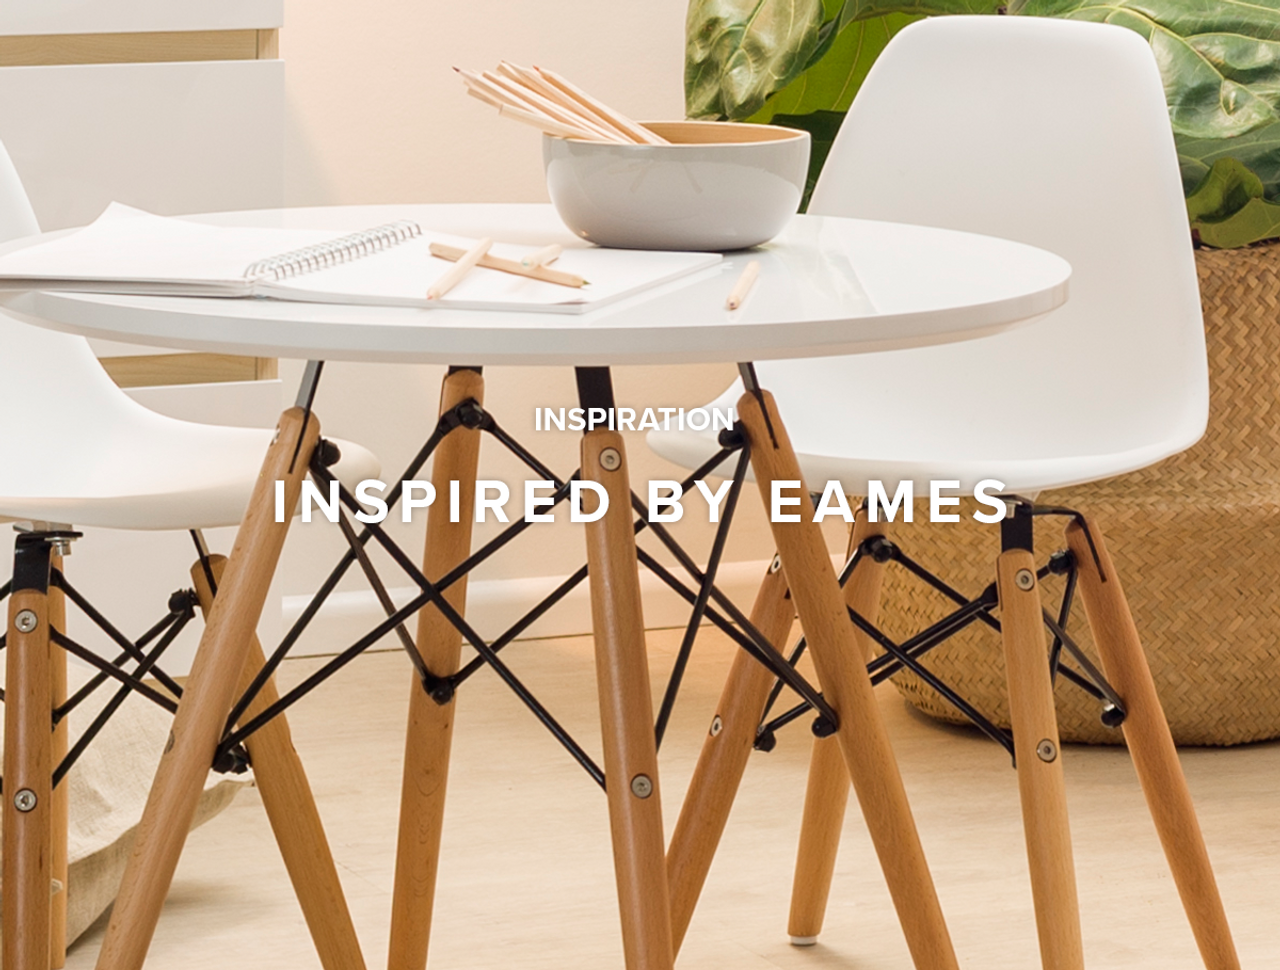 Inspired by Eames